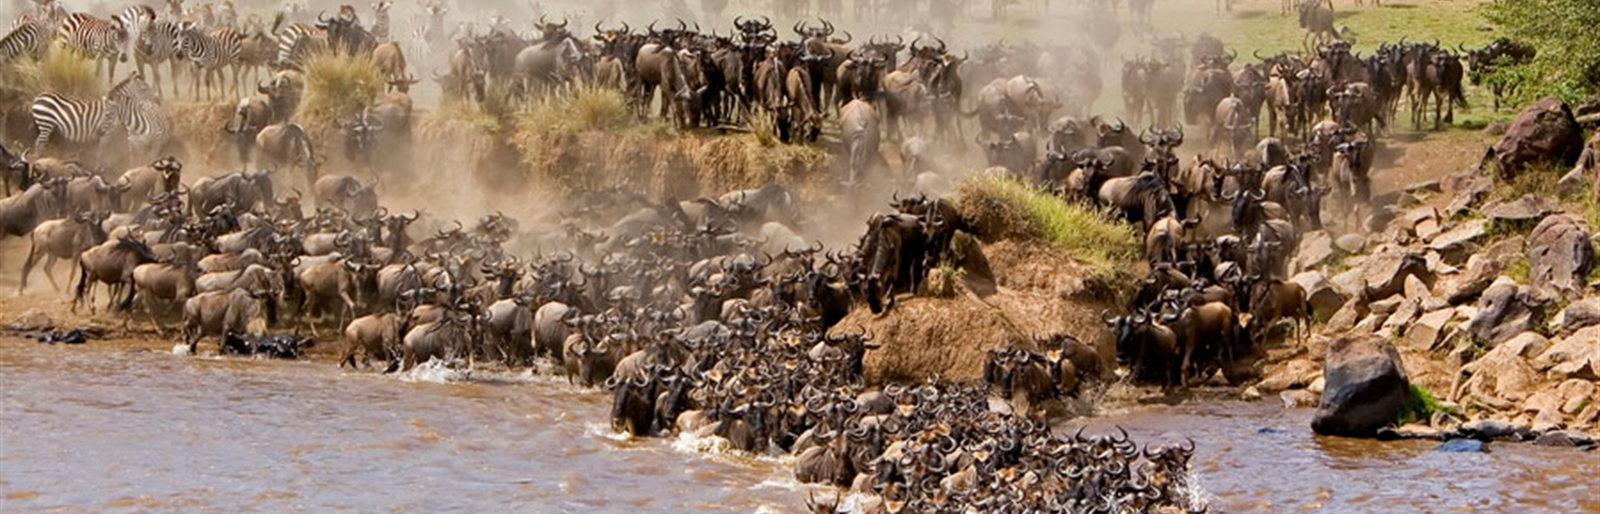 The Wild Migration in Maasai Mara National Reserve In Kenya